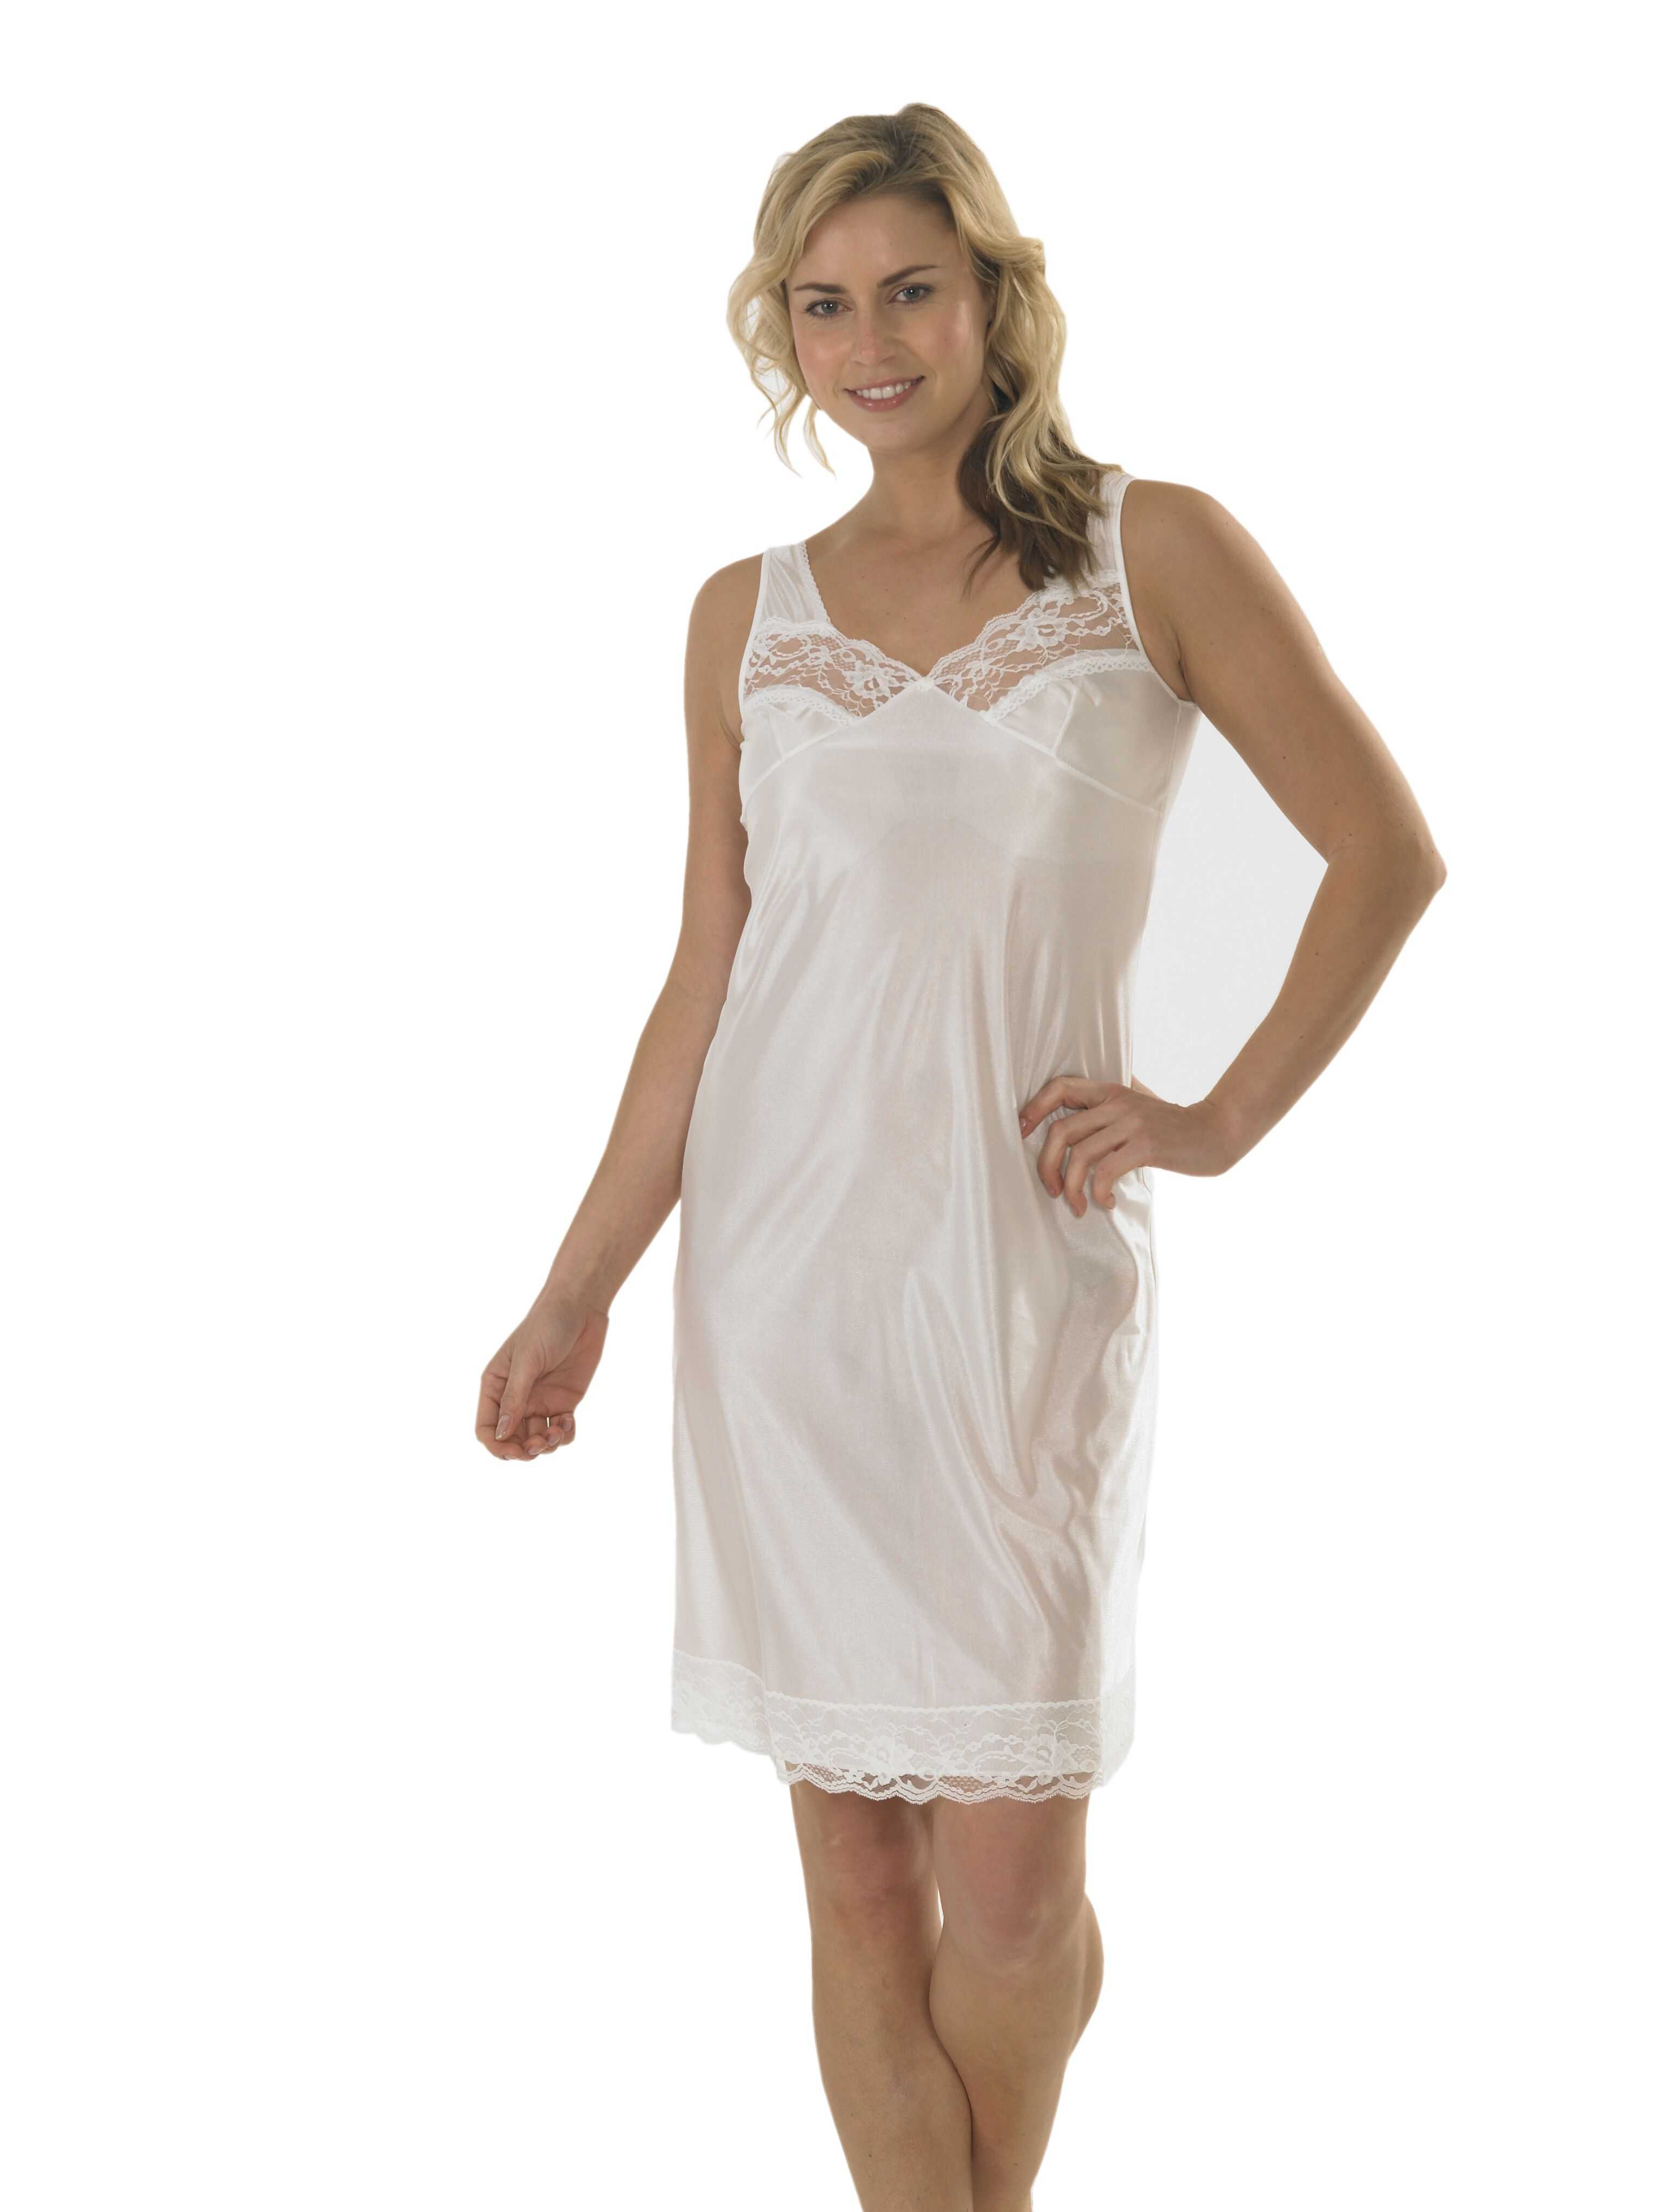 Shop for womens full slip online at Target. Free shipping on purchases over $35 and save 5% every day with your Target REDcard.